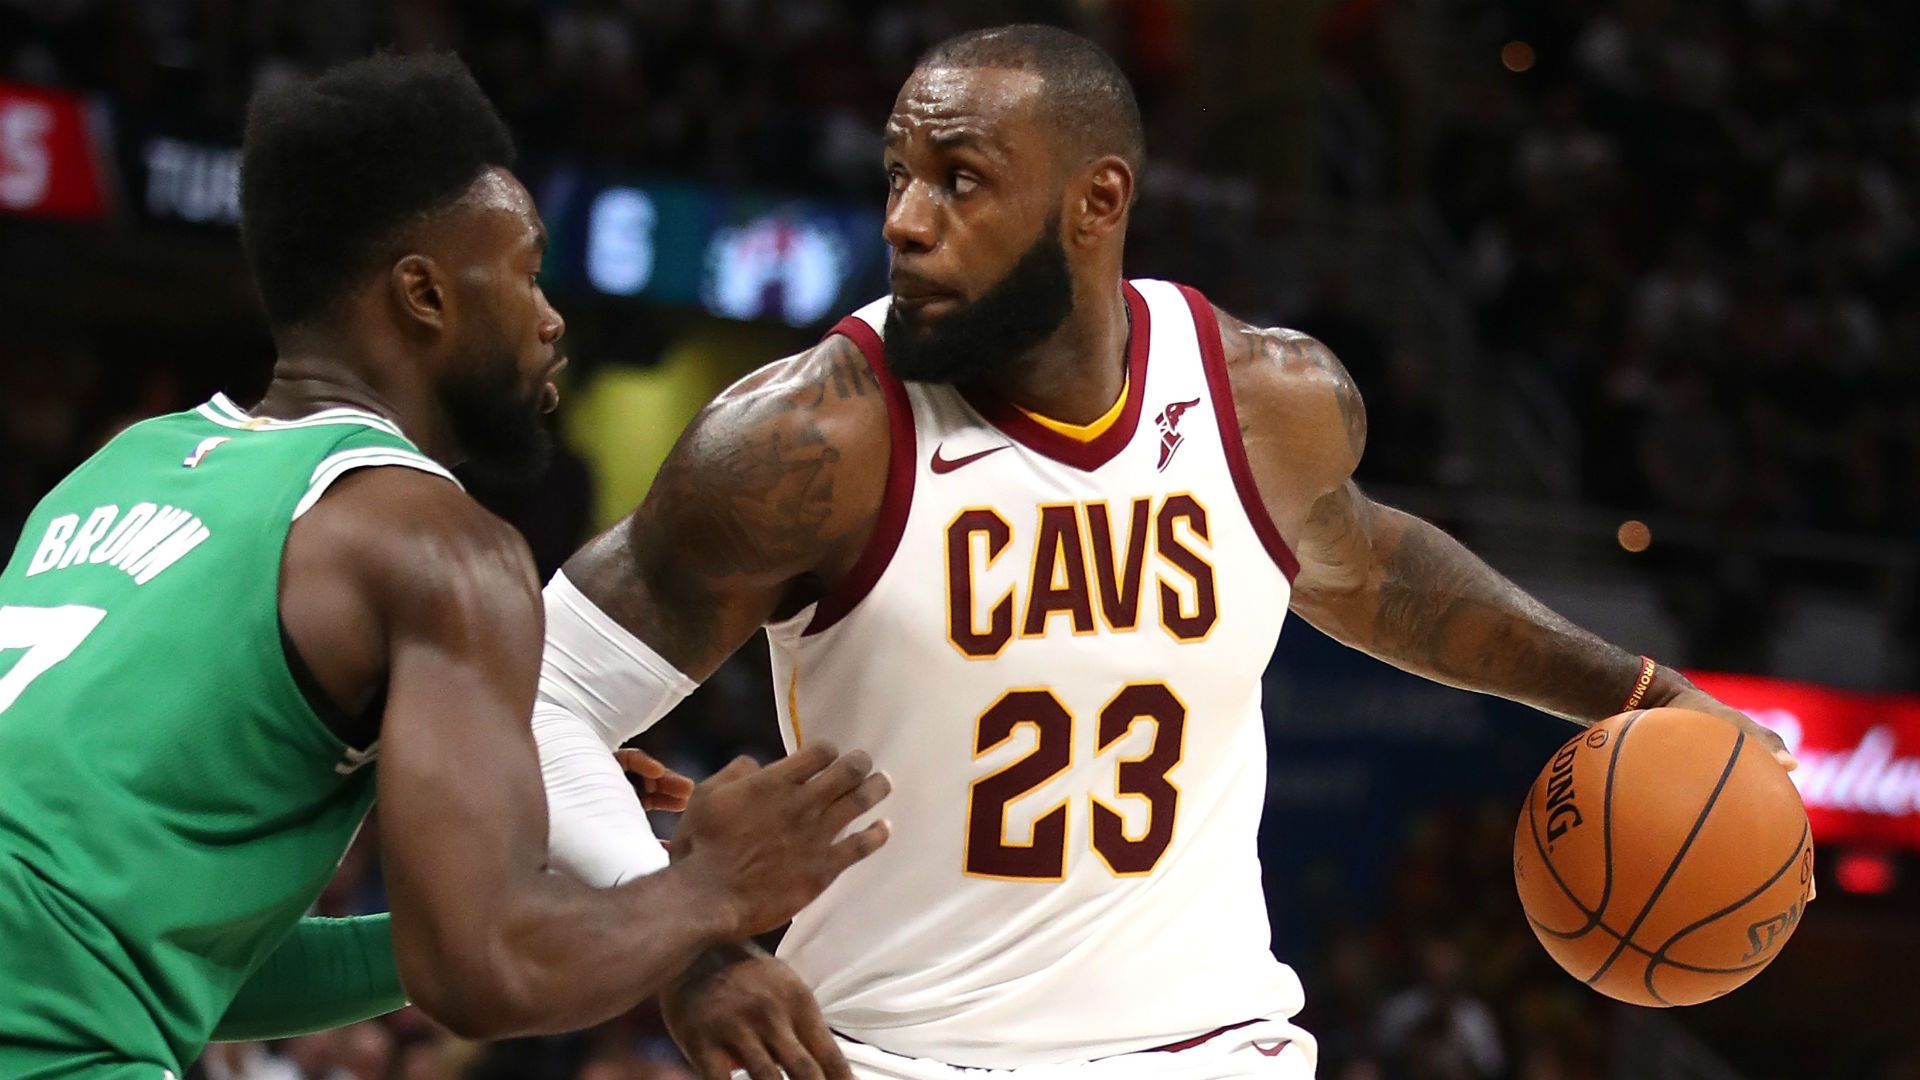 LeBron didn't have faith in Cavs players, future